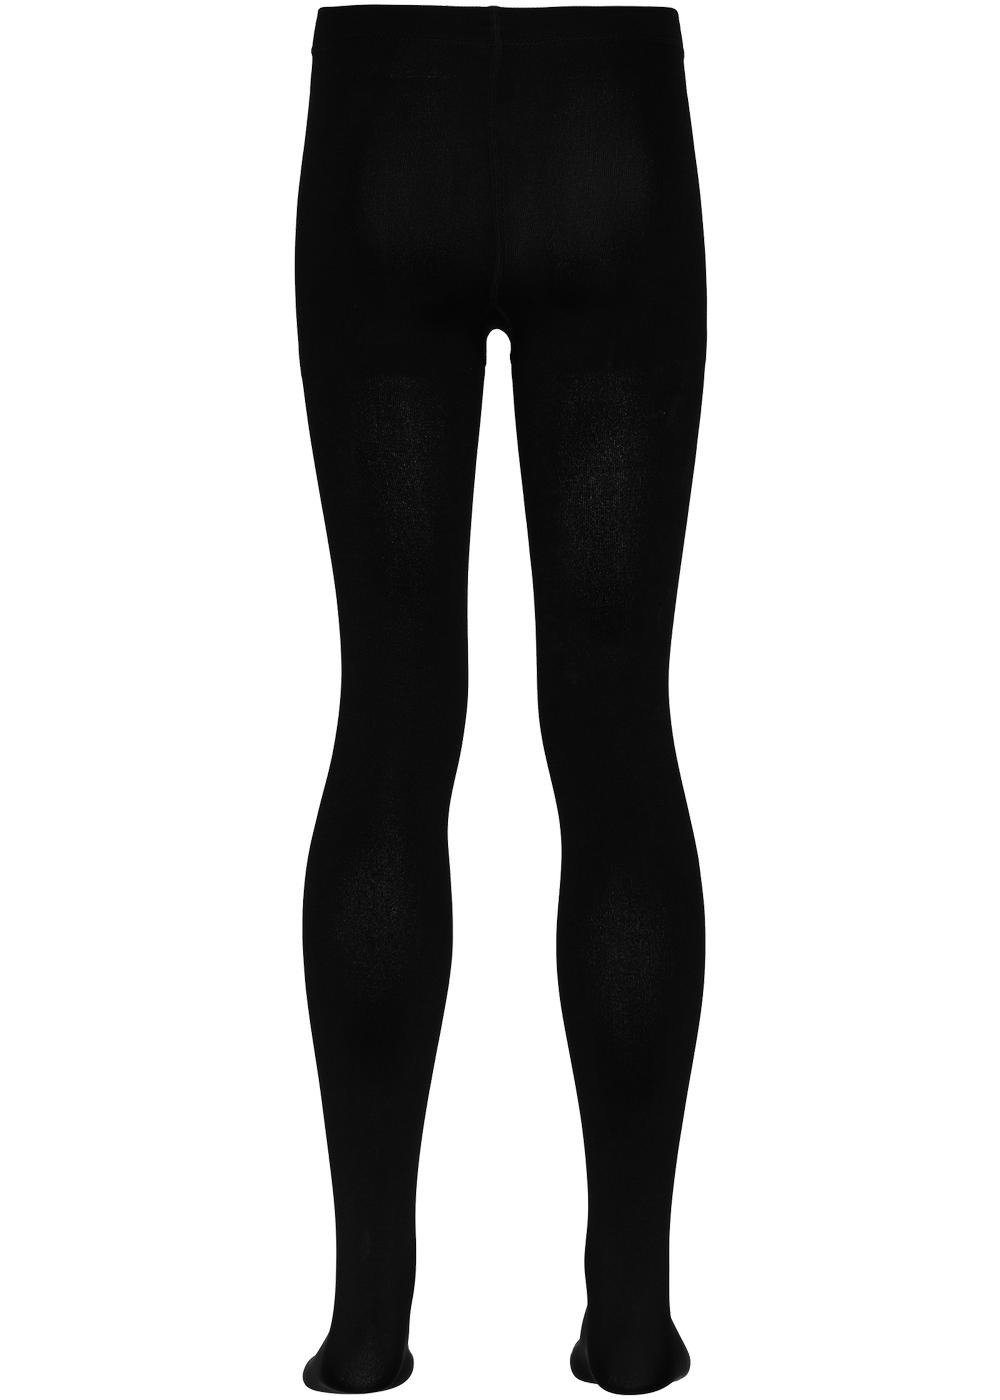 Girl's thermal tights